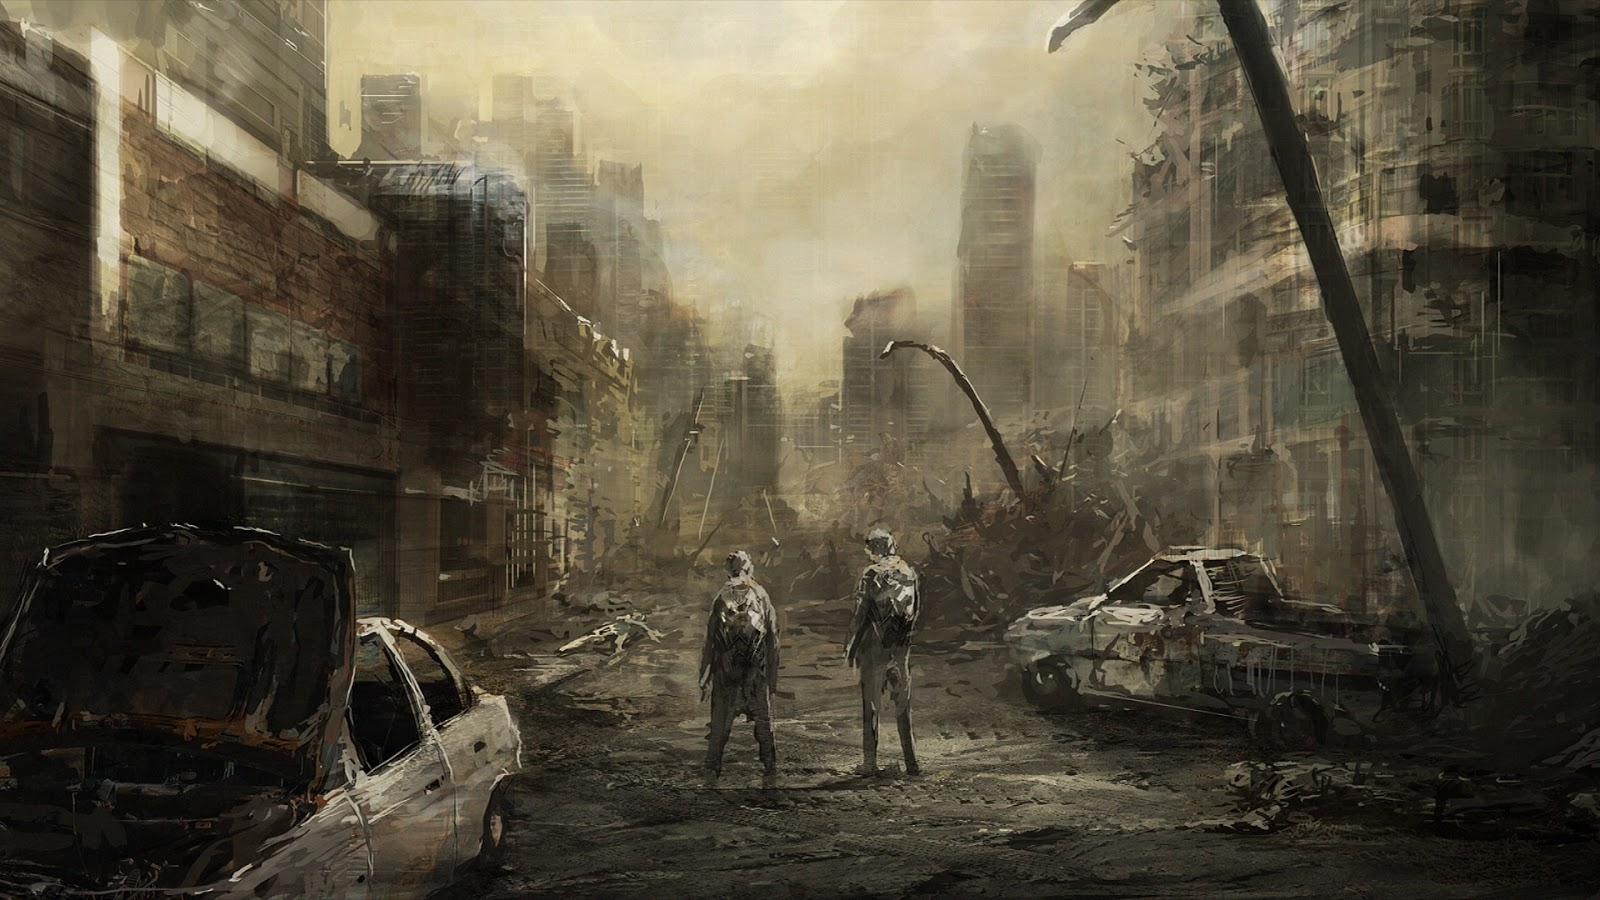 World wildness web post apocalyptic wallpapers - Intire decrution ...